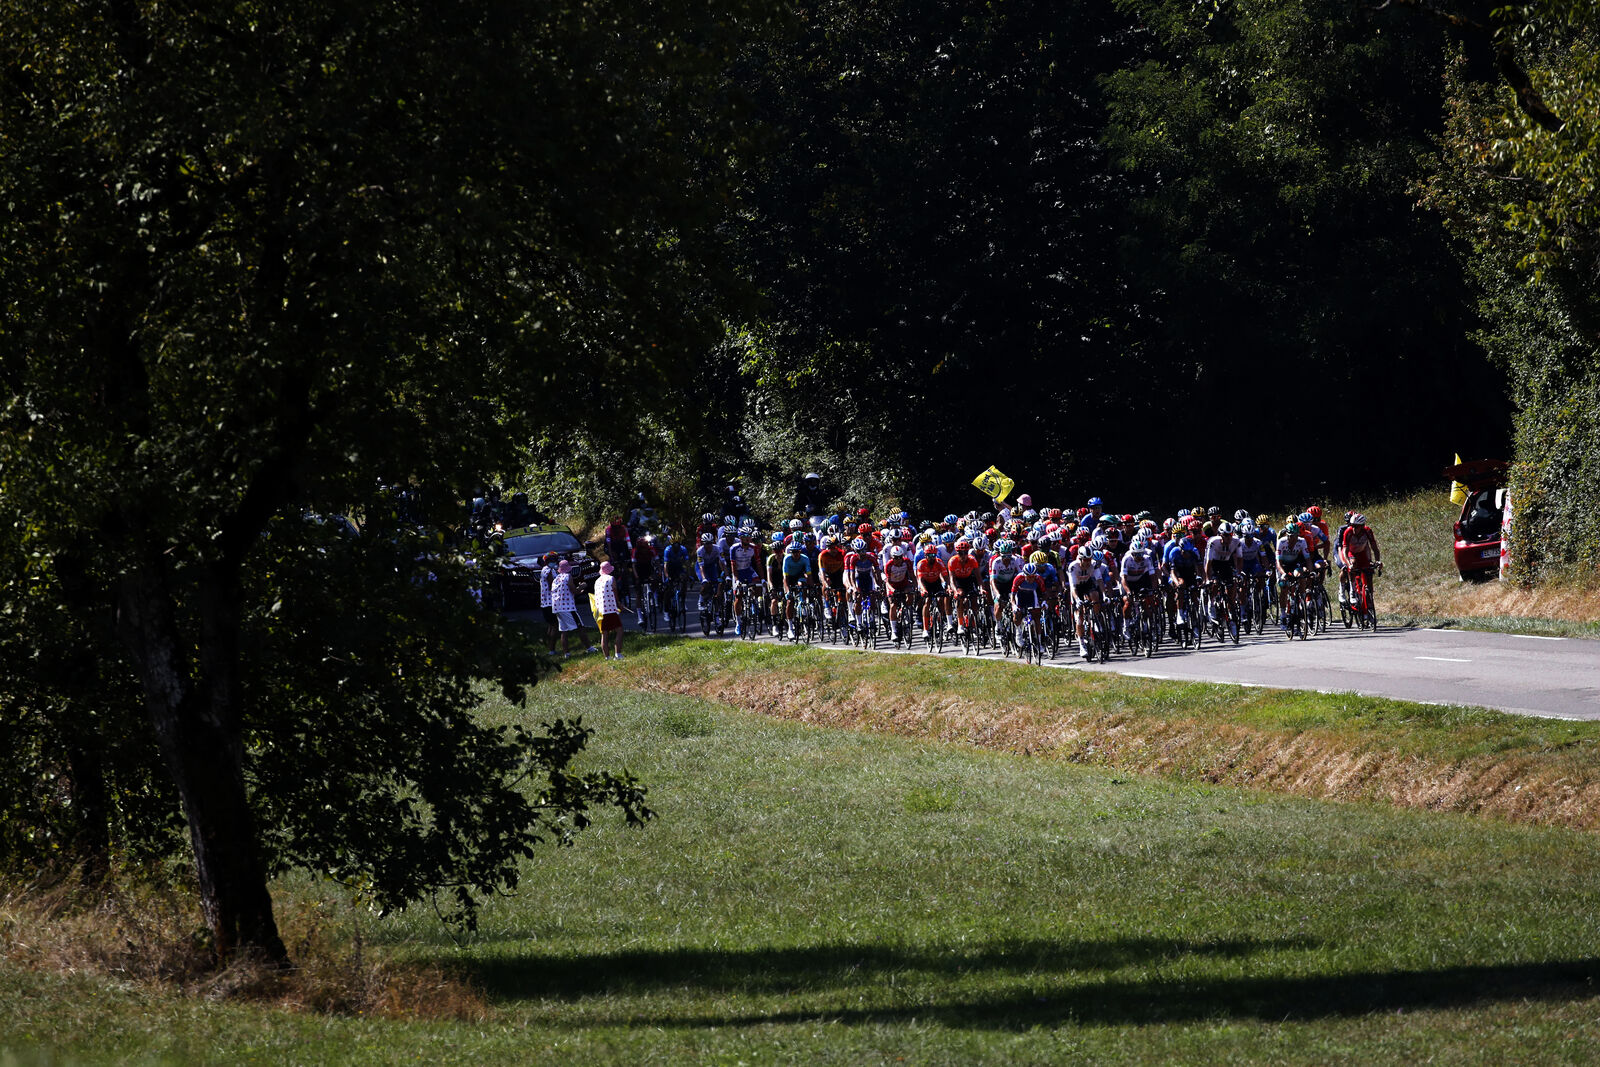 The pack rides during the stage 19 of the Tour de France cycling race over 166 kilometers (103 miles), with start in Bourg-en-Bresse and finish in Champagnole, Friday, Sept. 18, 2020. (AP Photo/Christophe Ena)